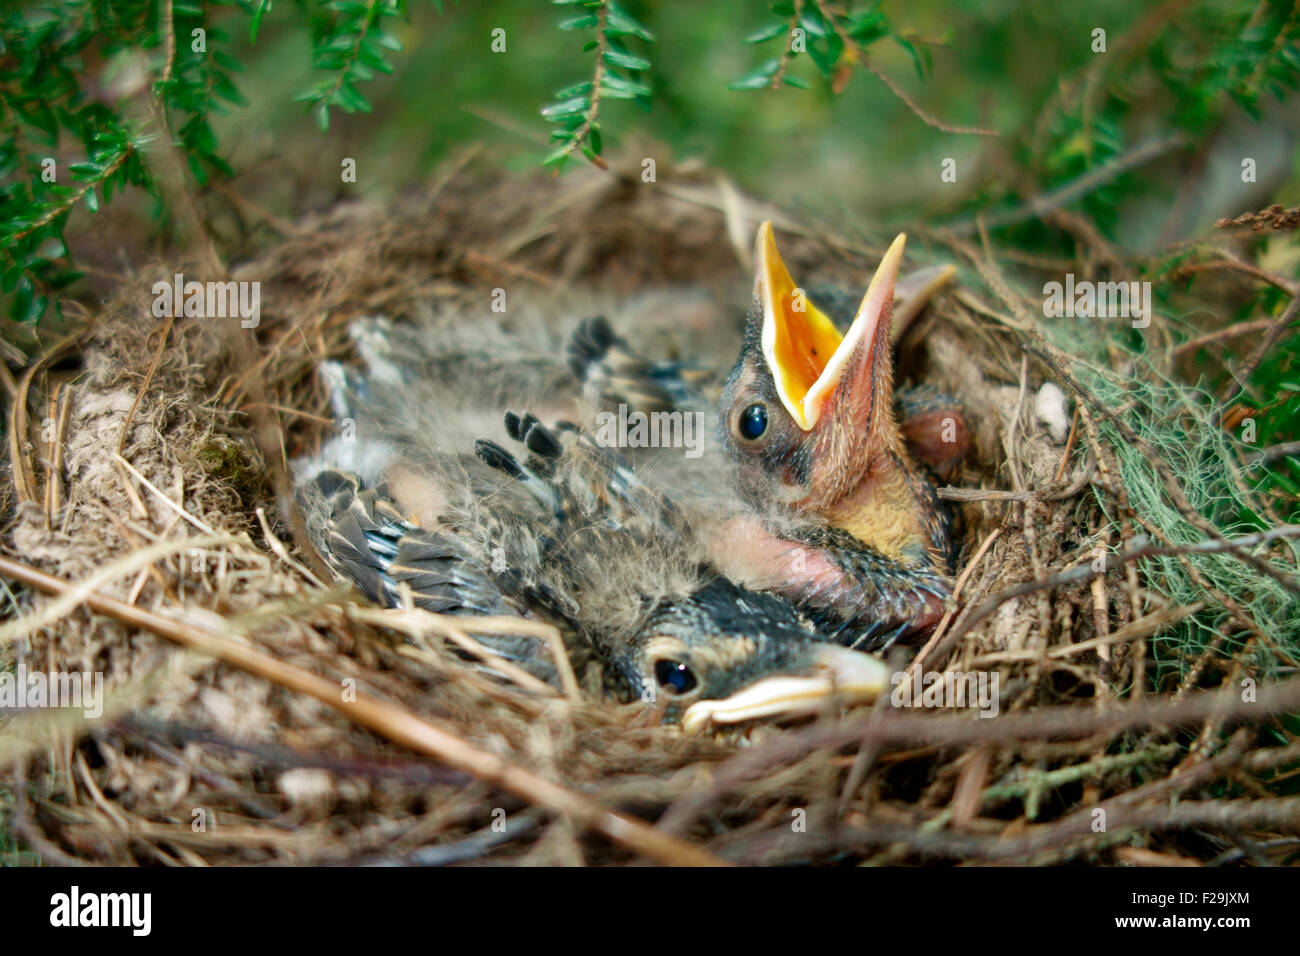 Baby Robins High Resolution Stock Photography And Images Alamy